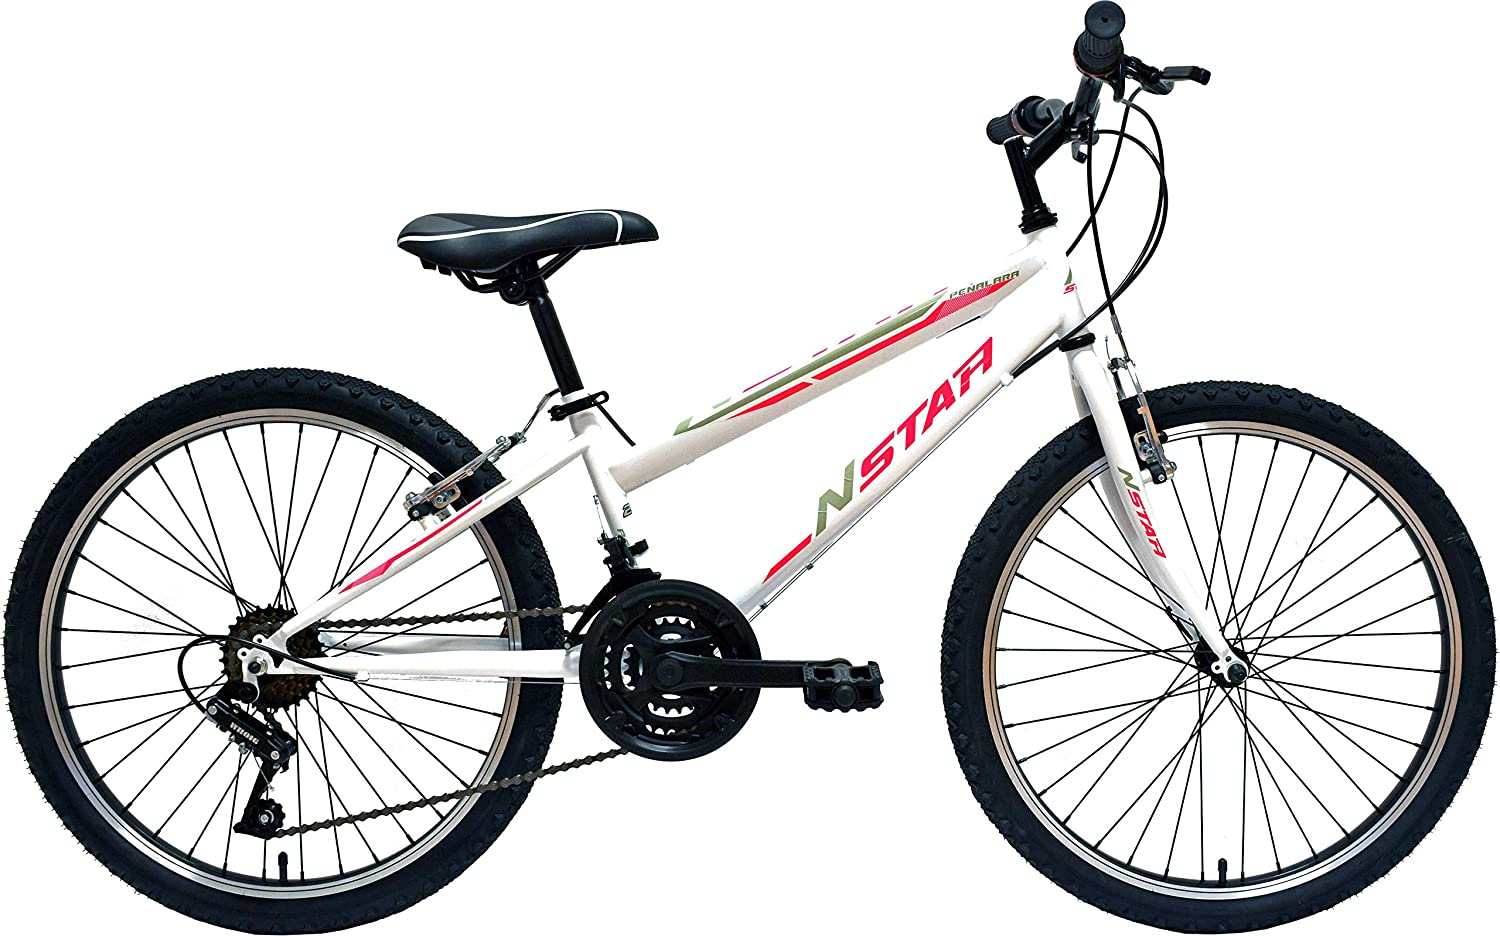 New Star - Bicicleta BTT 24